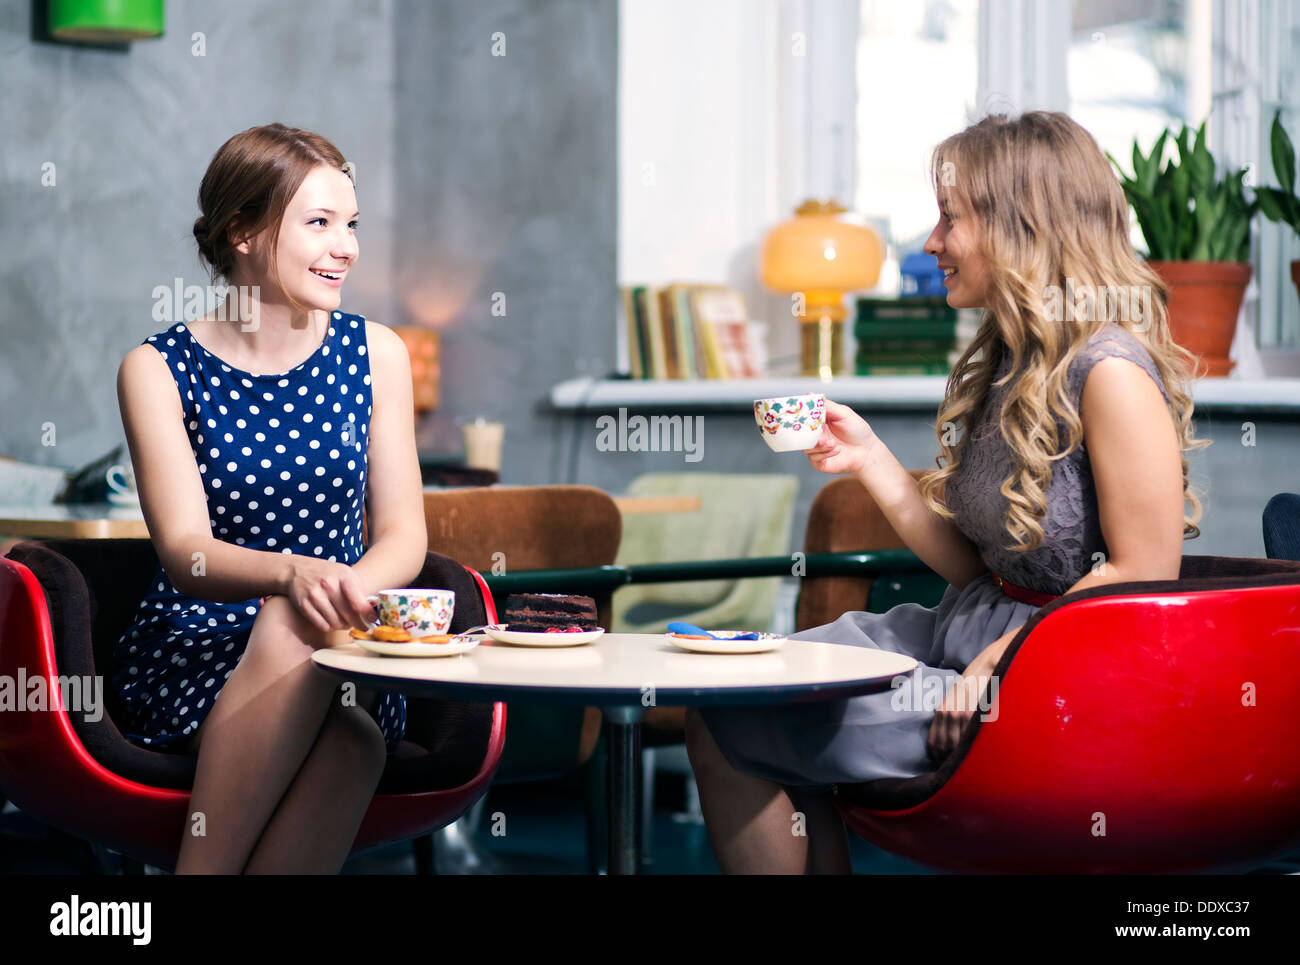 Two womans make dialogue and snile over joke - Stock Image